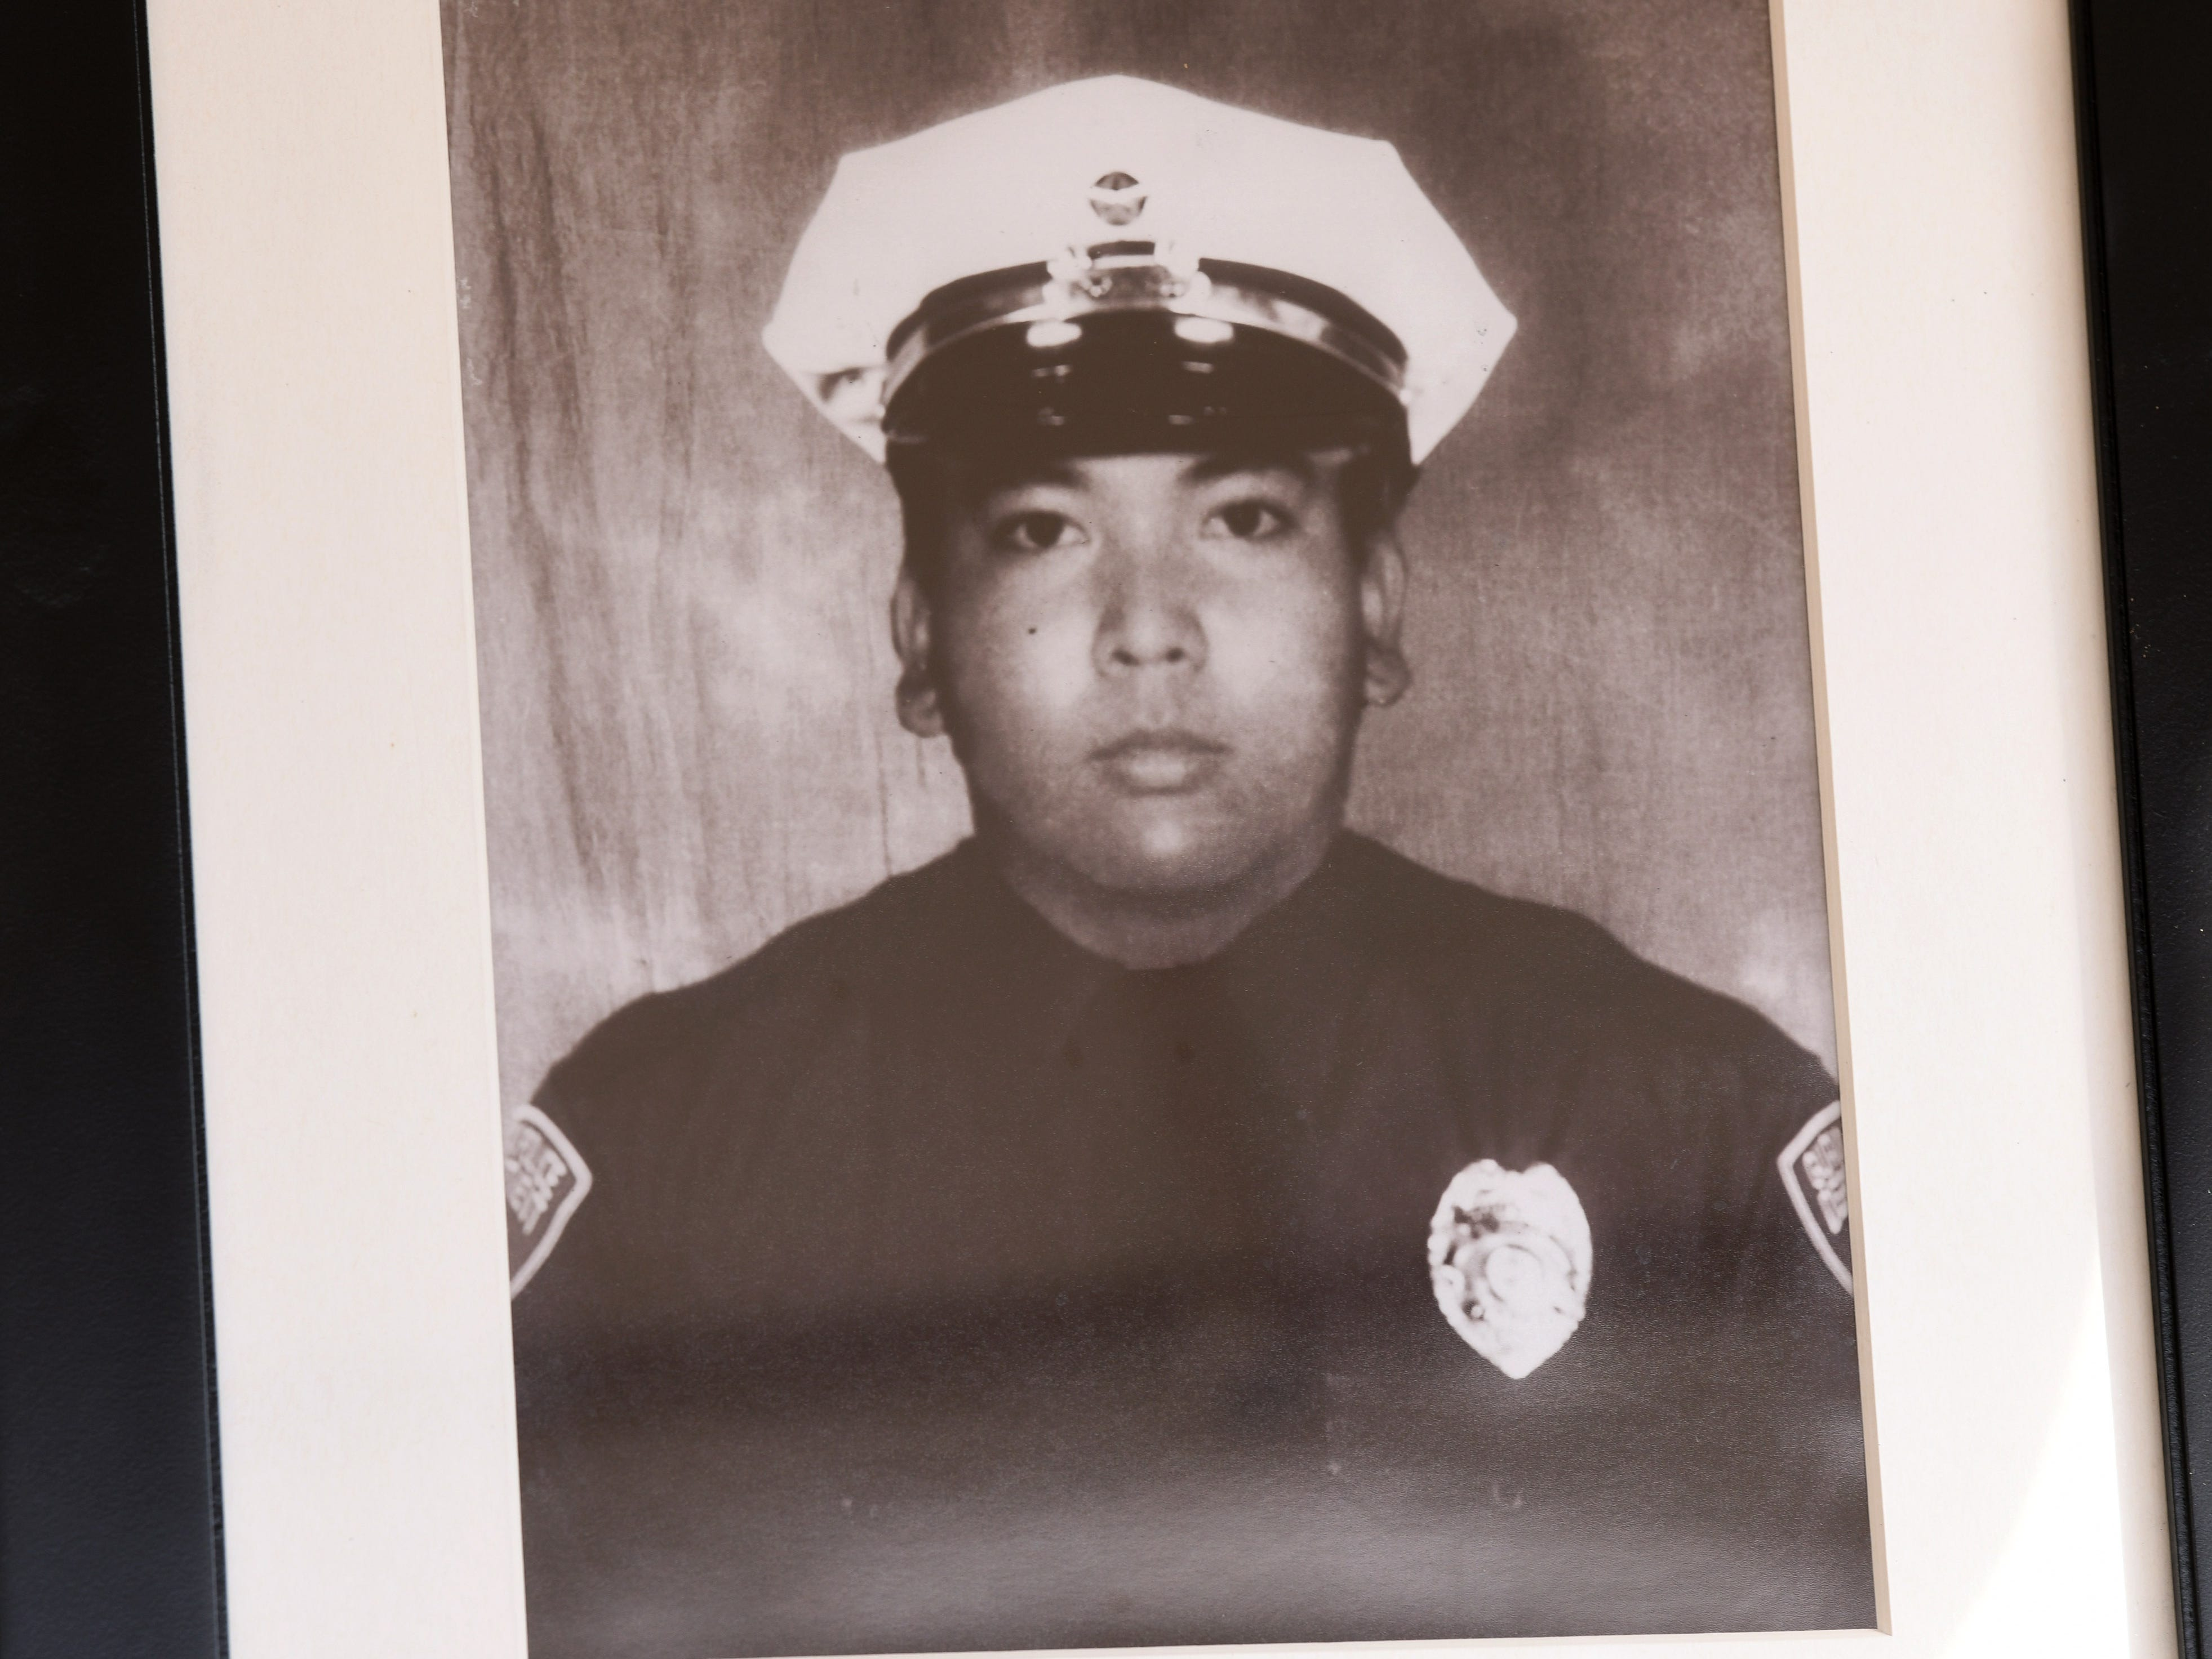 Police Officer Raymond Sanchez